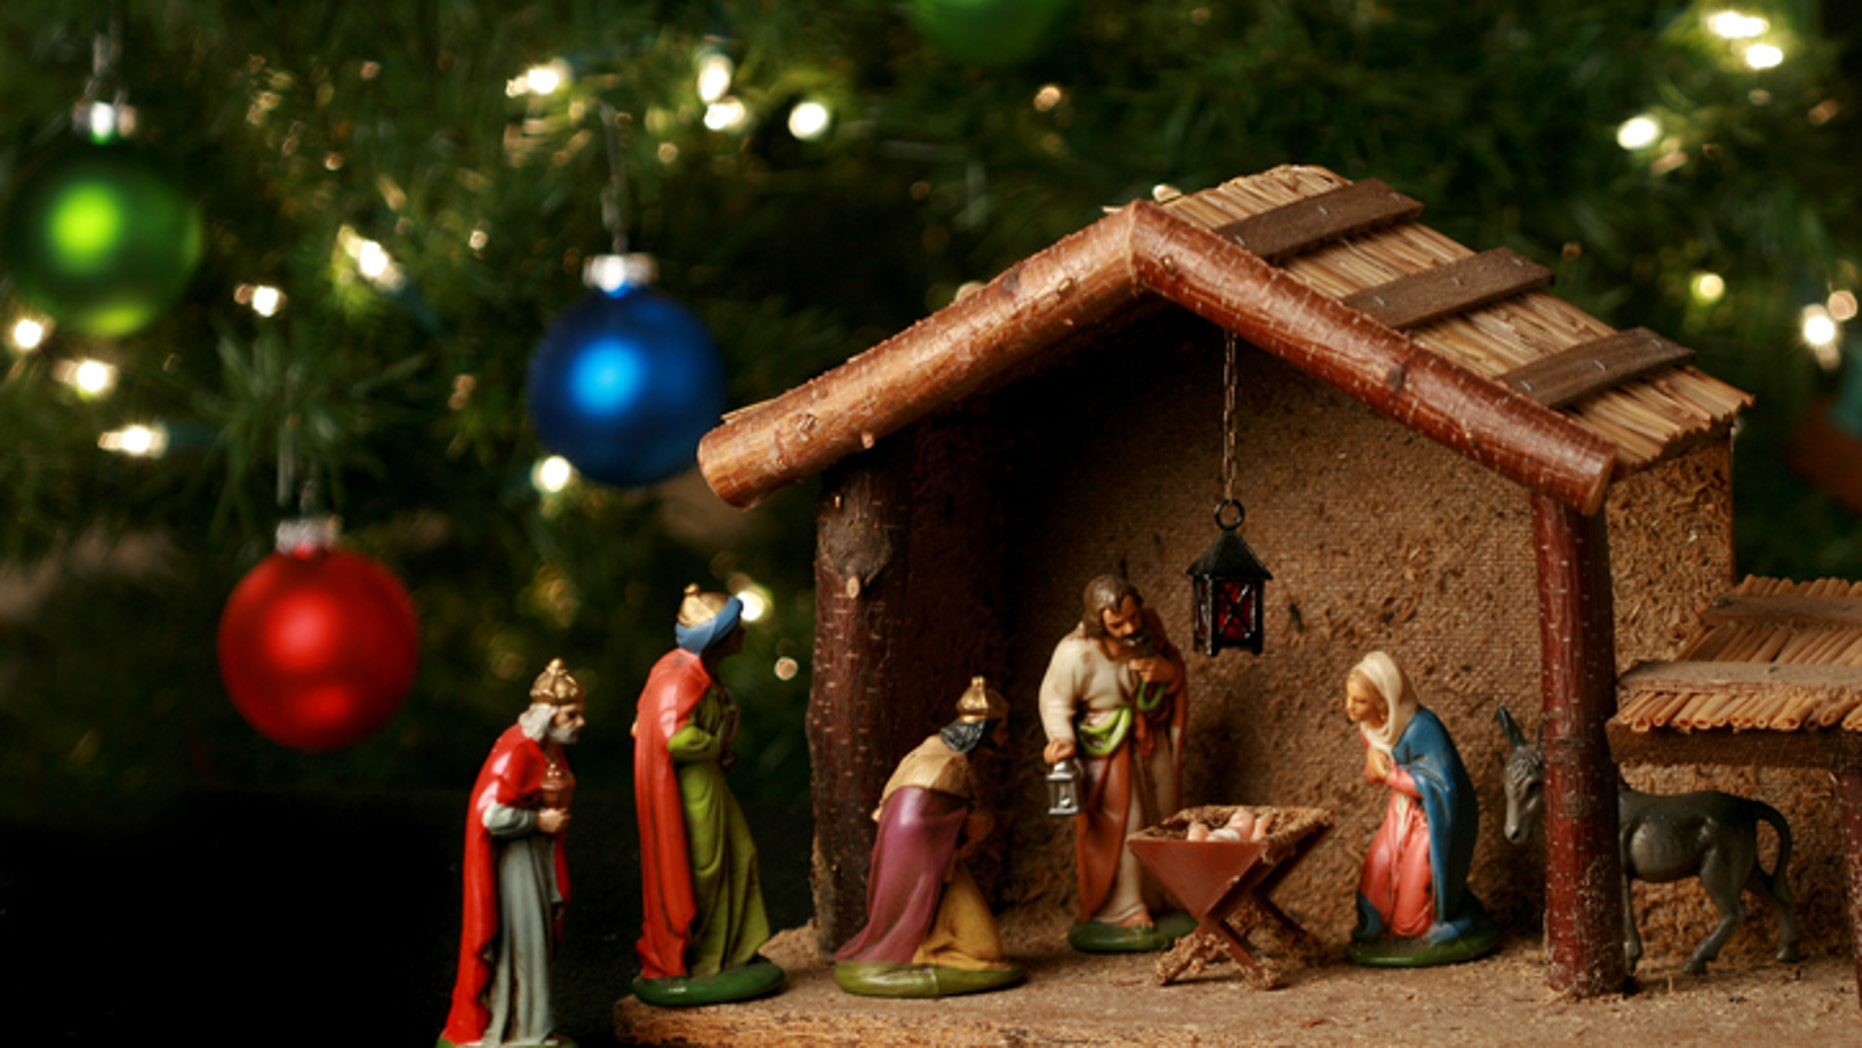 Jesus Christmas Pic.The Promise Of Christmas Why We Still Celebrate The Birth